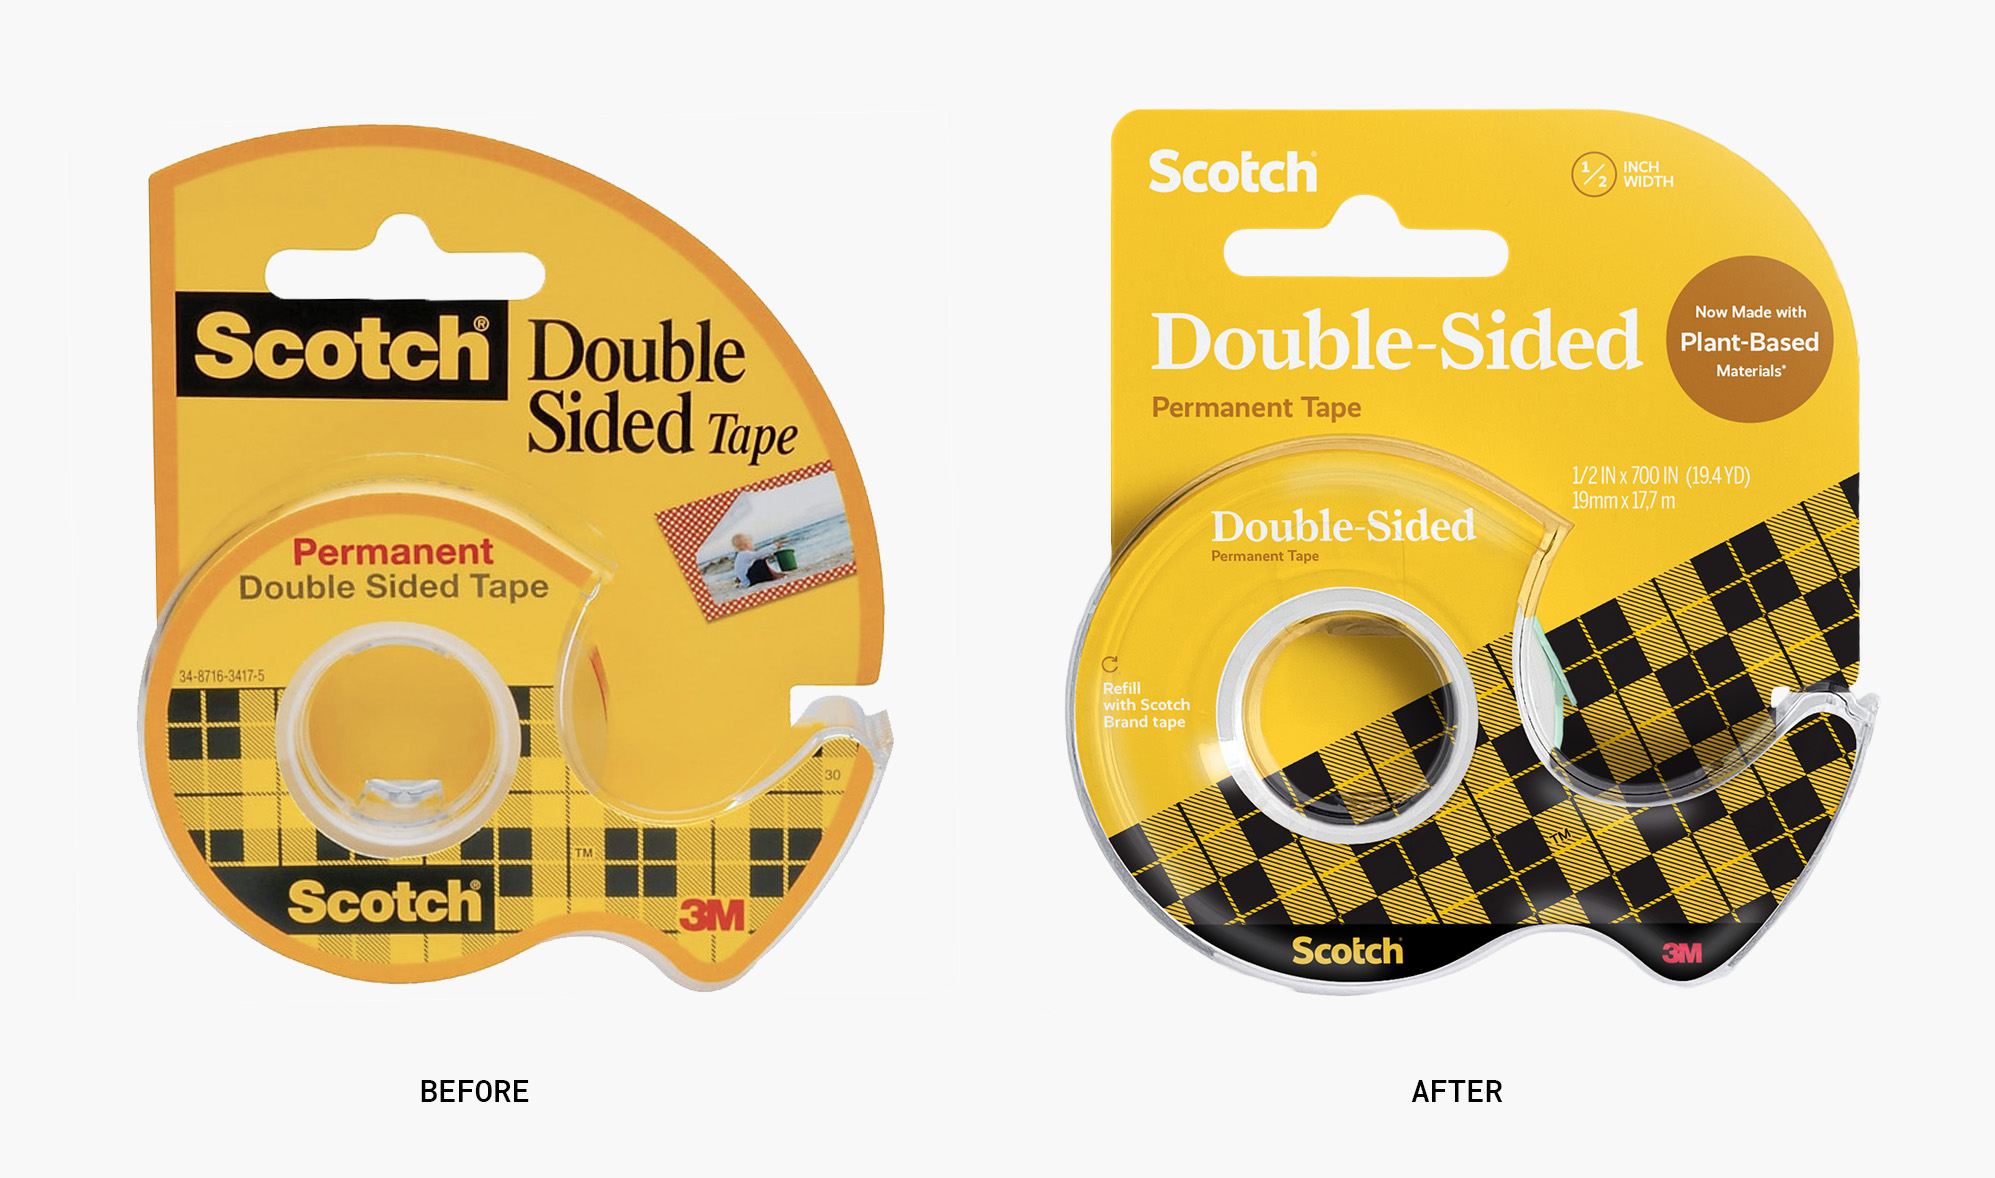 Before and after of Scotch's double-sided tape packaging